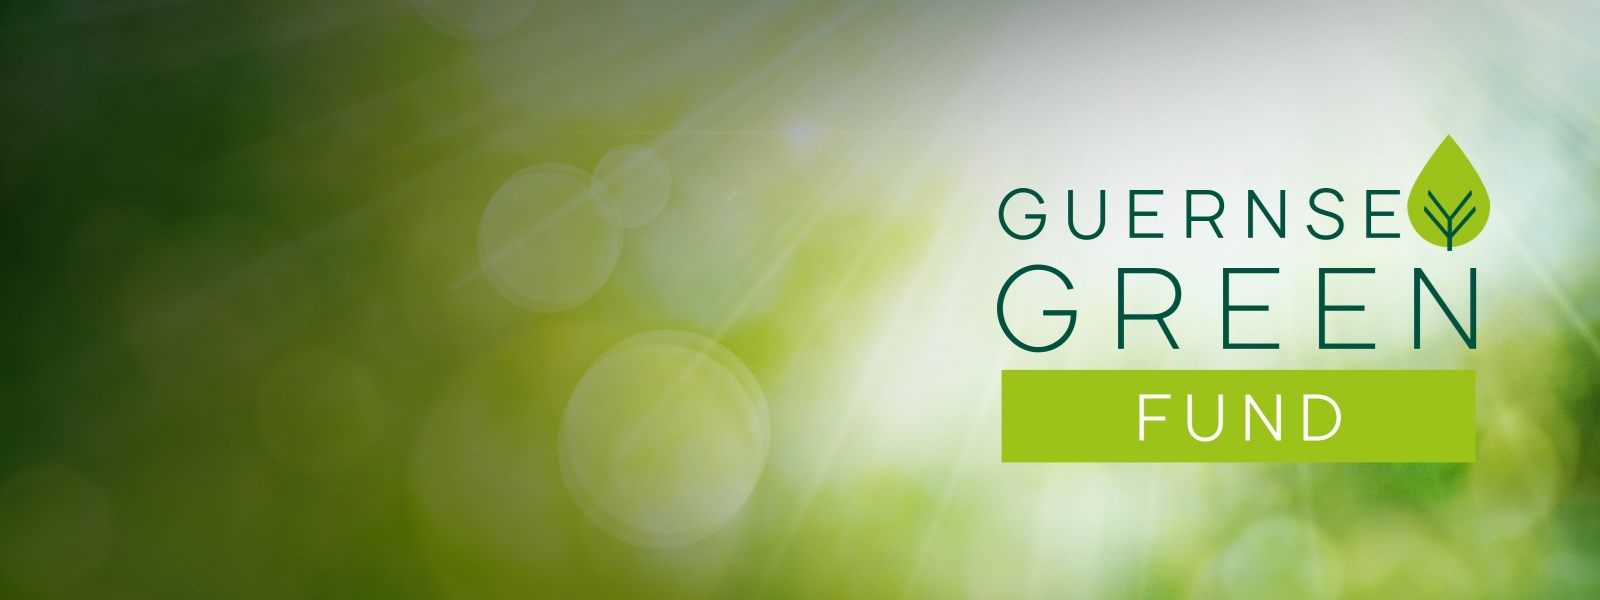 Guernsey green fund hero (homepage).jpg